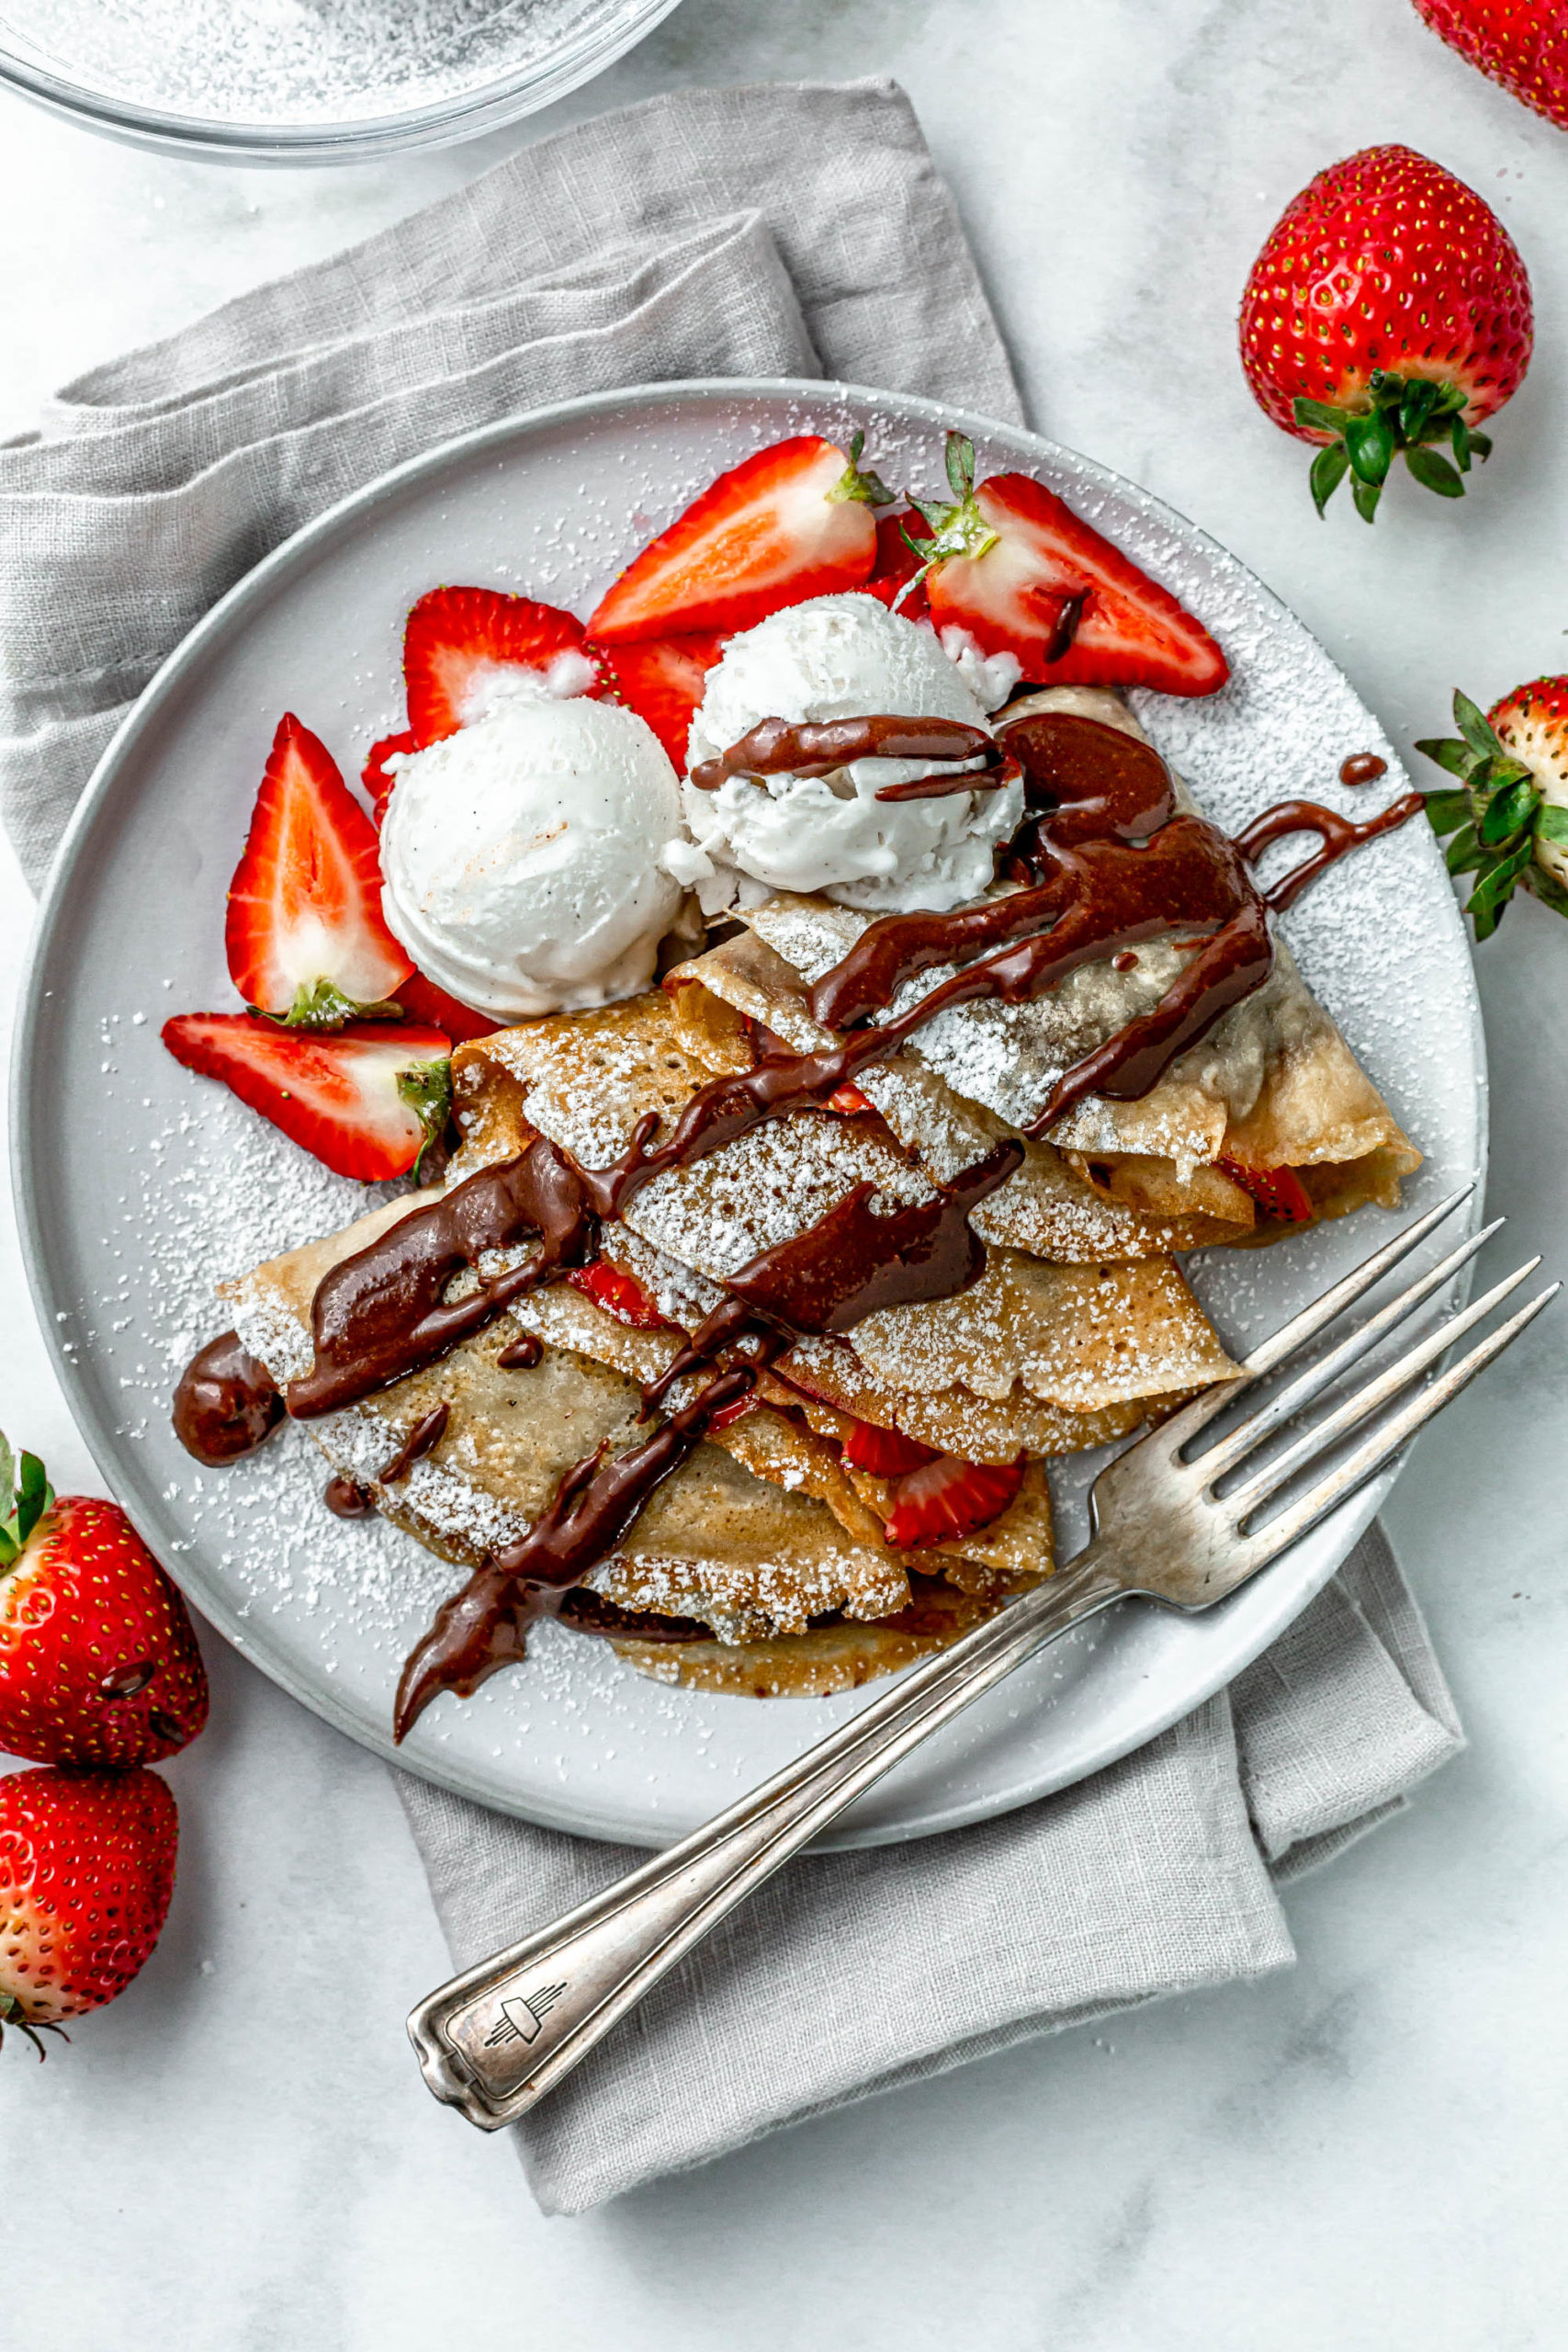 Nutella Berry Crepe